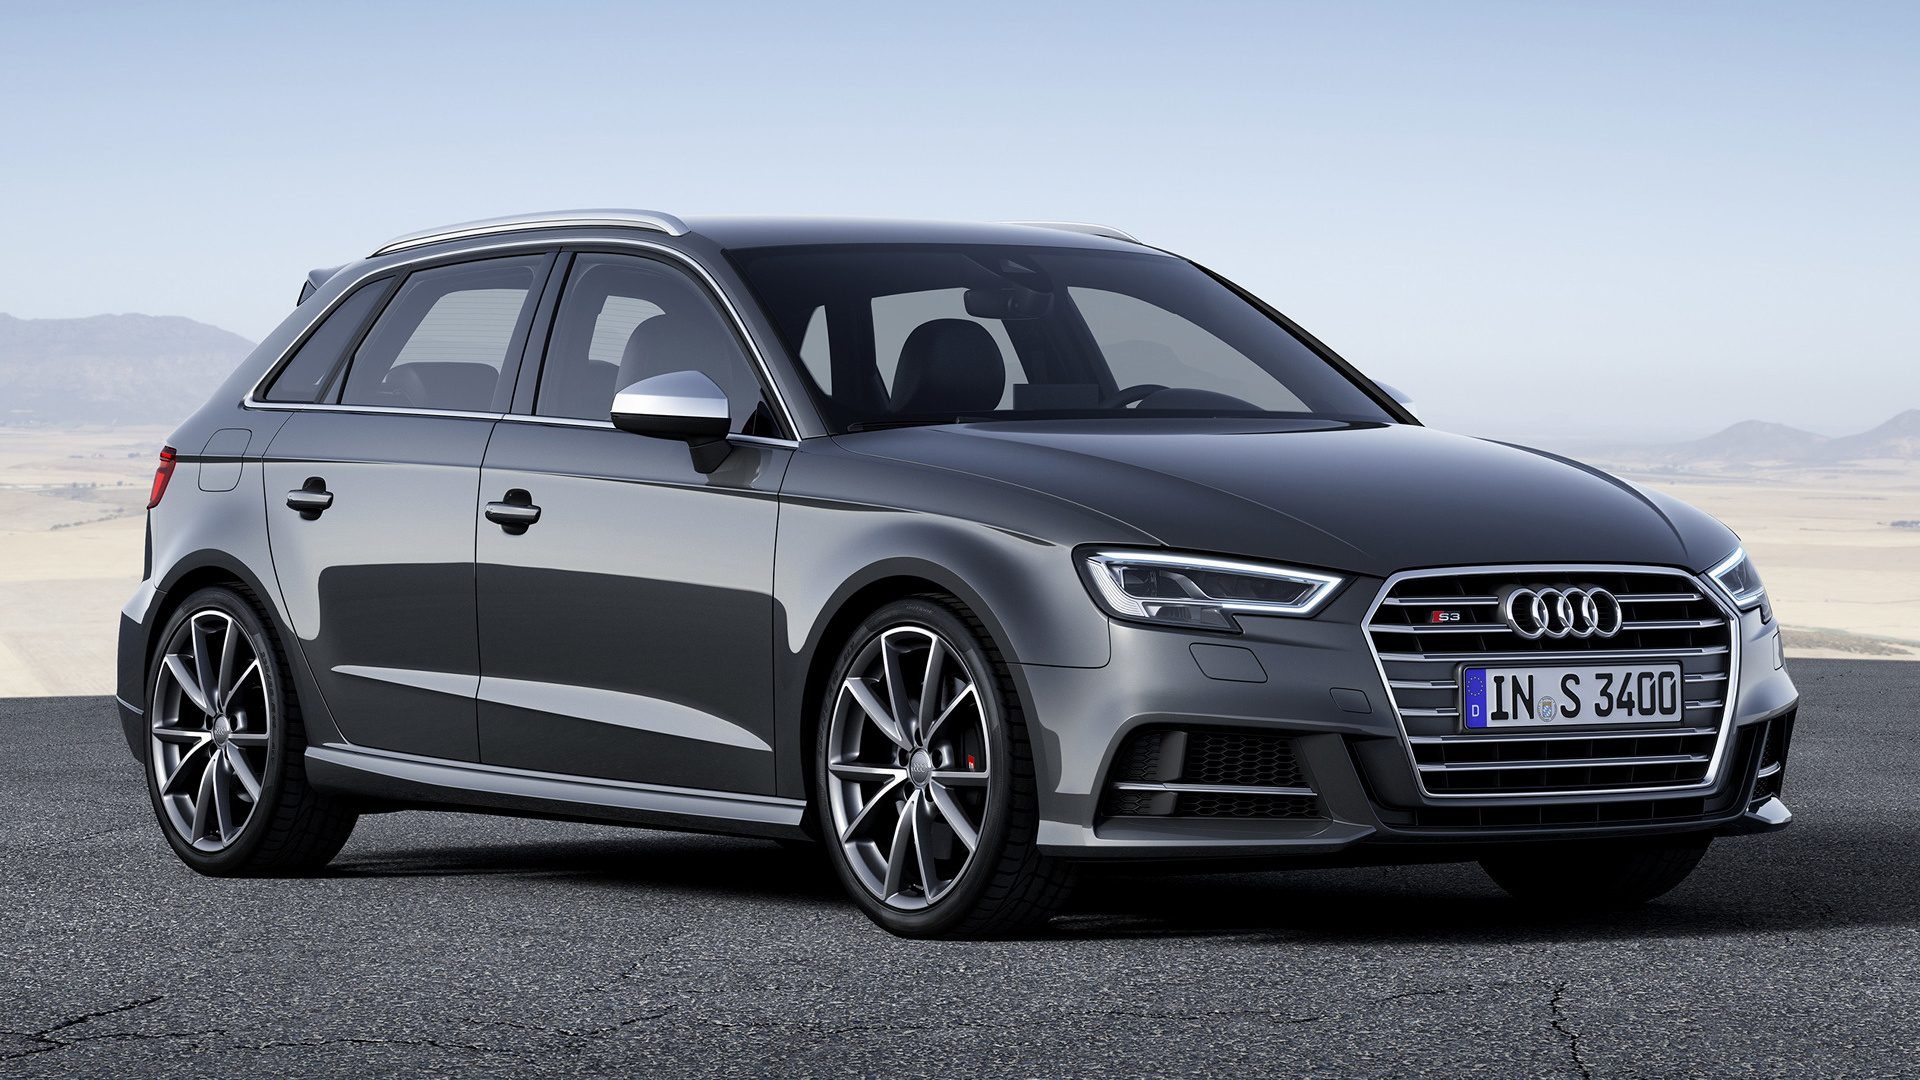 Audi S3 Sportback (2016) Wallpapers and HD Images - Car Pixel